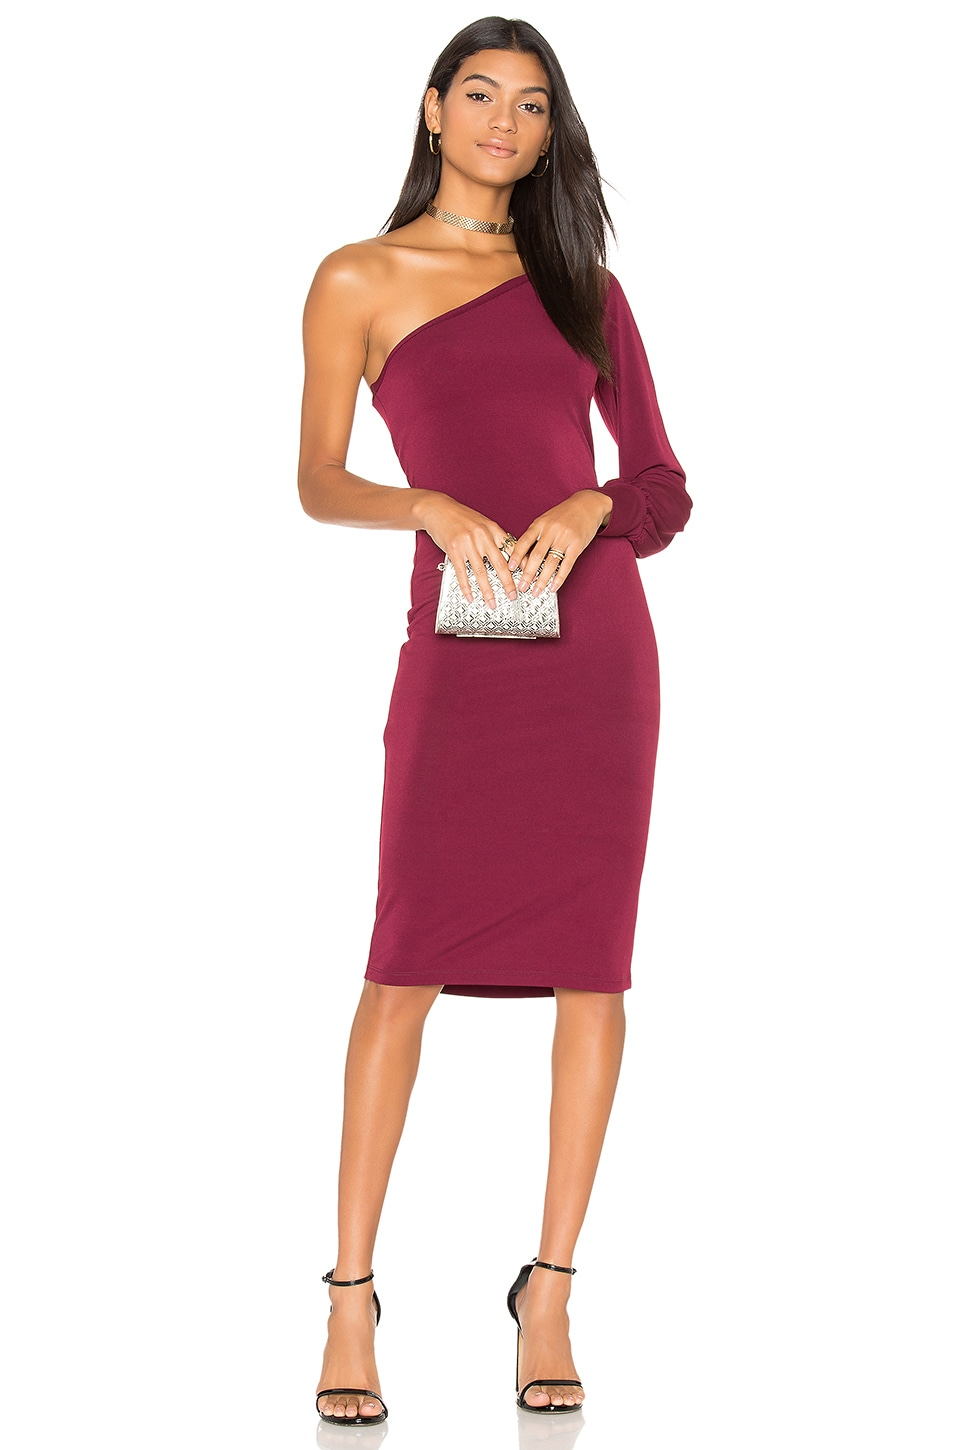 YFB CLOTHING Vesper Dress in Chestnut